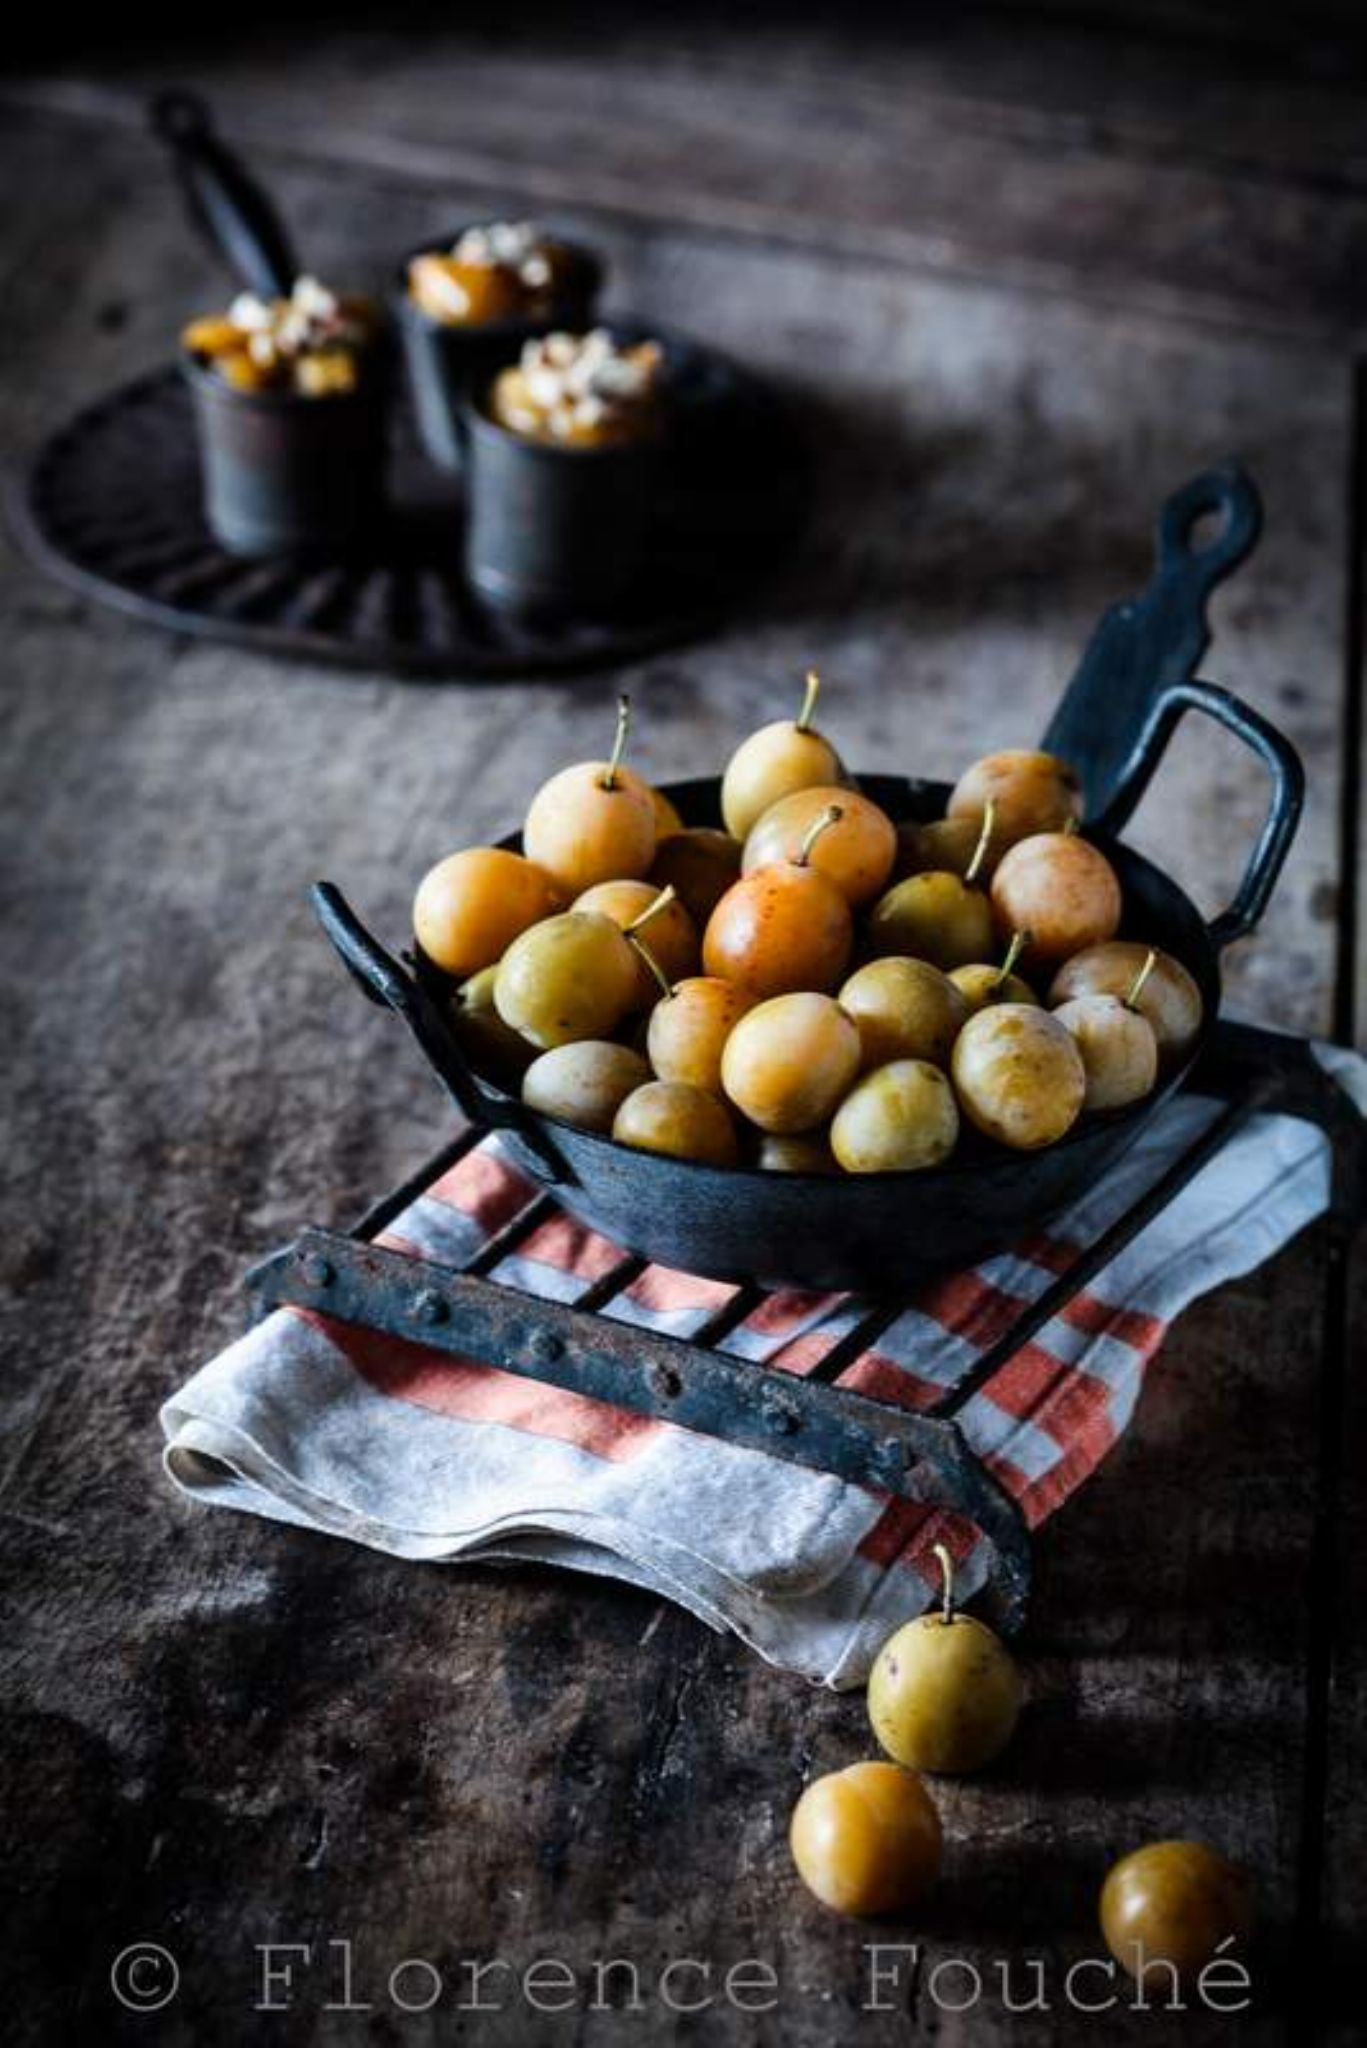 Stewed plums by Florence Fouché